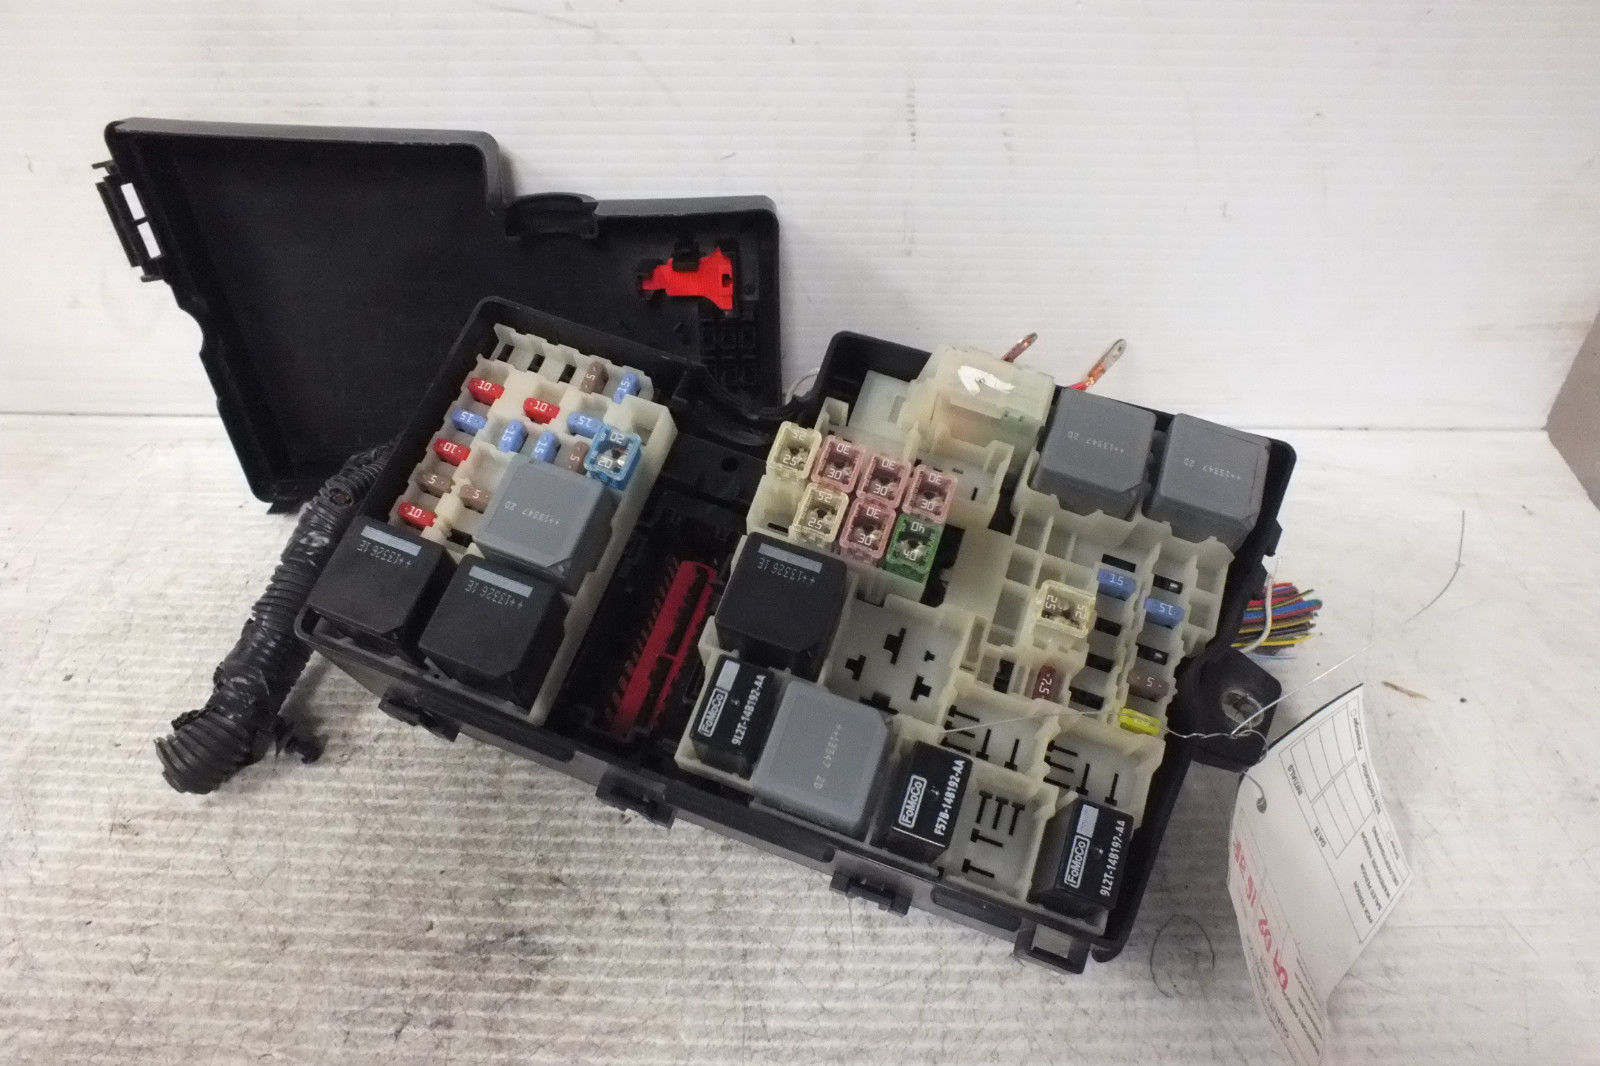 2012 2013 2014 Ford Focus Engine Compartment Fuse Box Av6t 14a067 Ac 104a